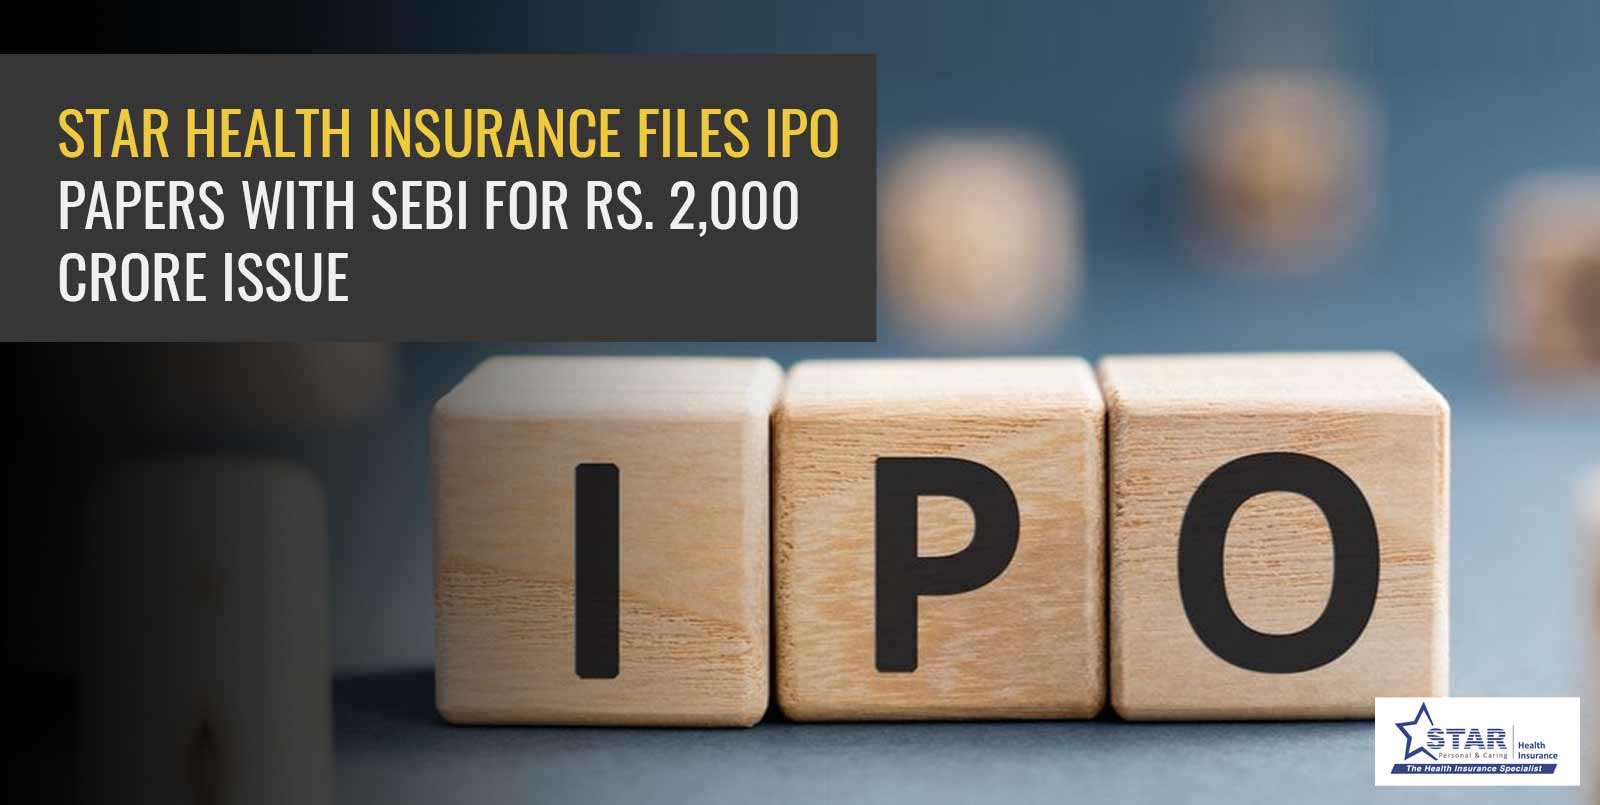 Star Health Insurance Files IPO Papers with SEBI for Rs. 2,000 crore Issue